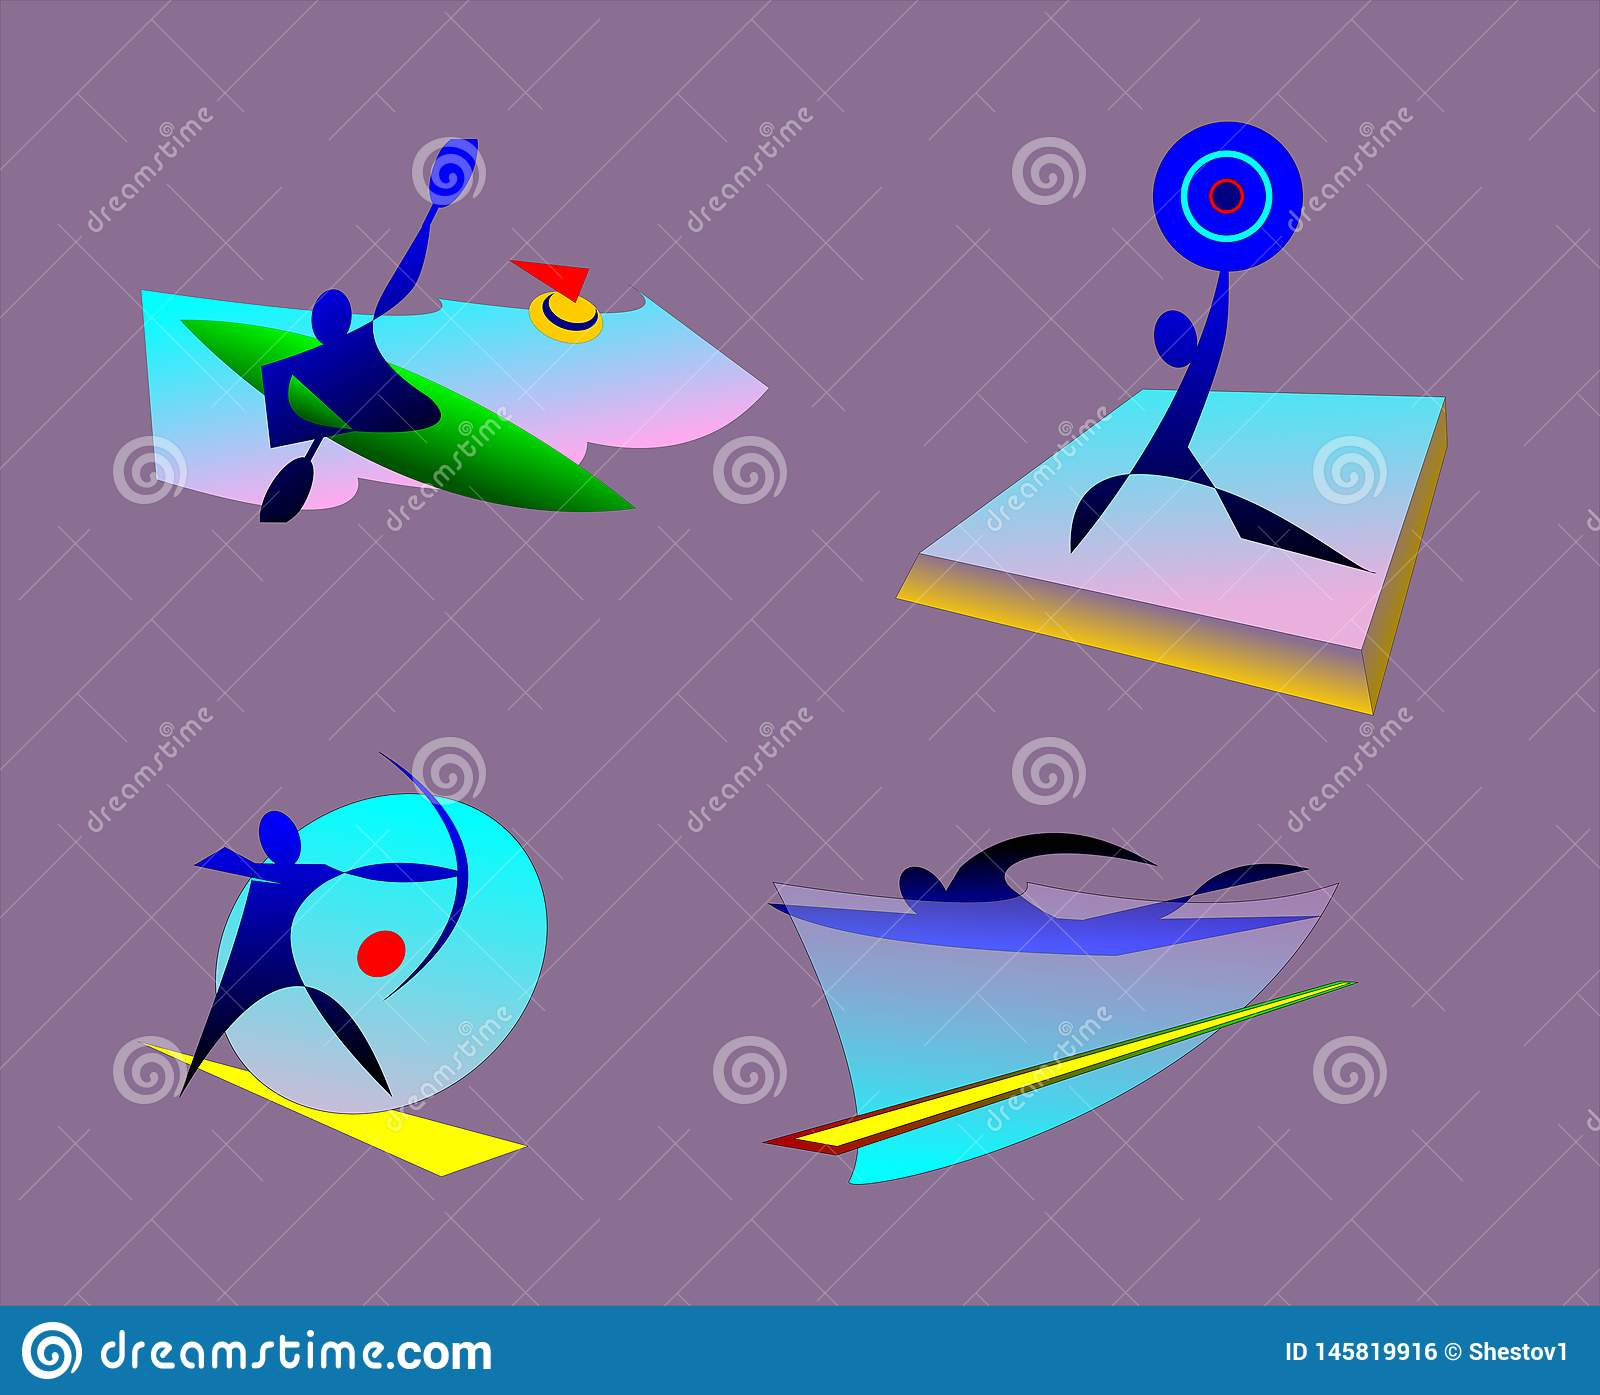 bages of summer olympic sports. kayaking, weightlifting, swimming, archery.